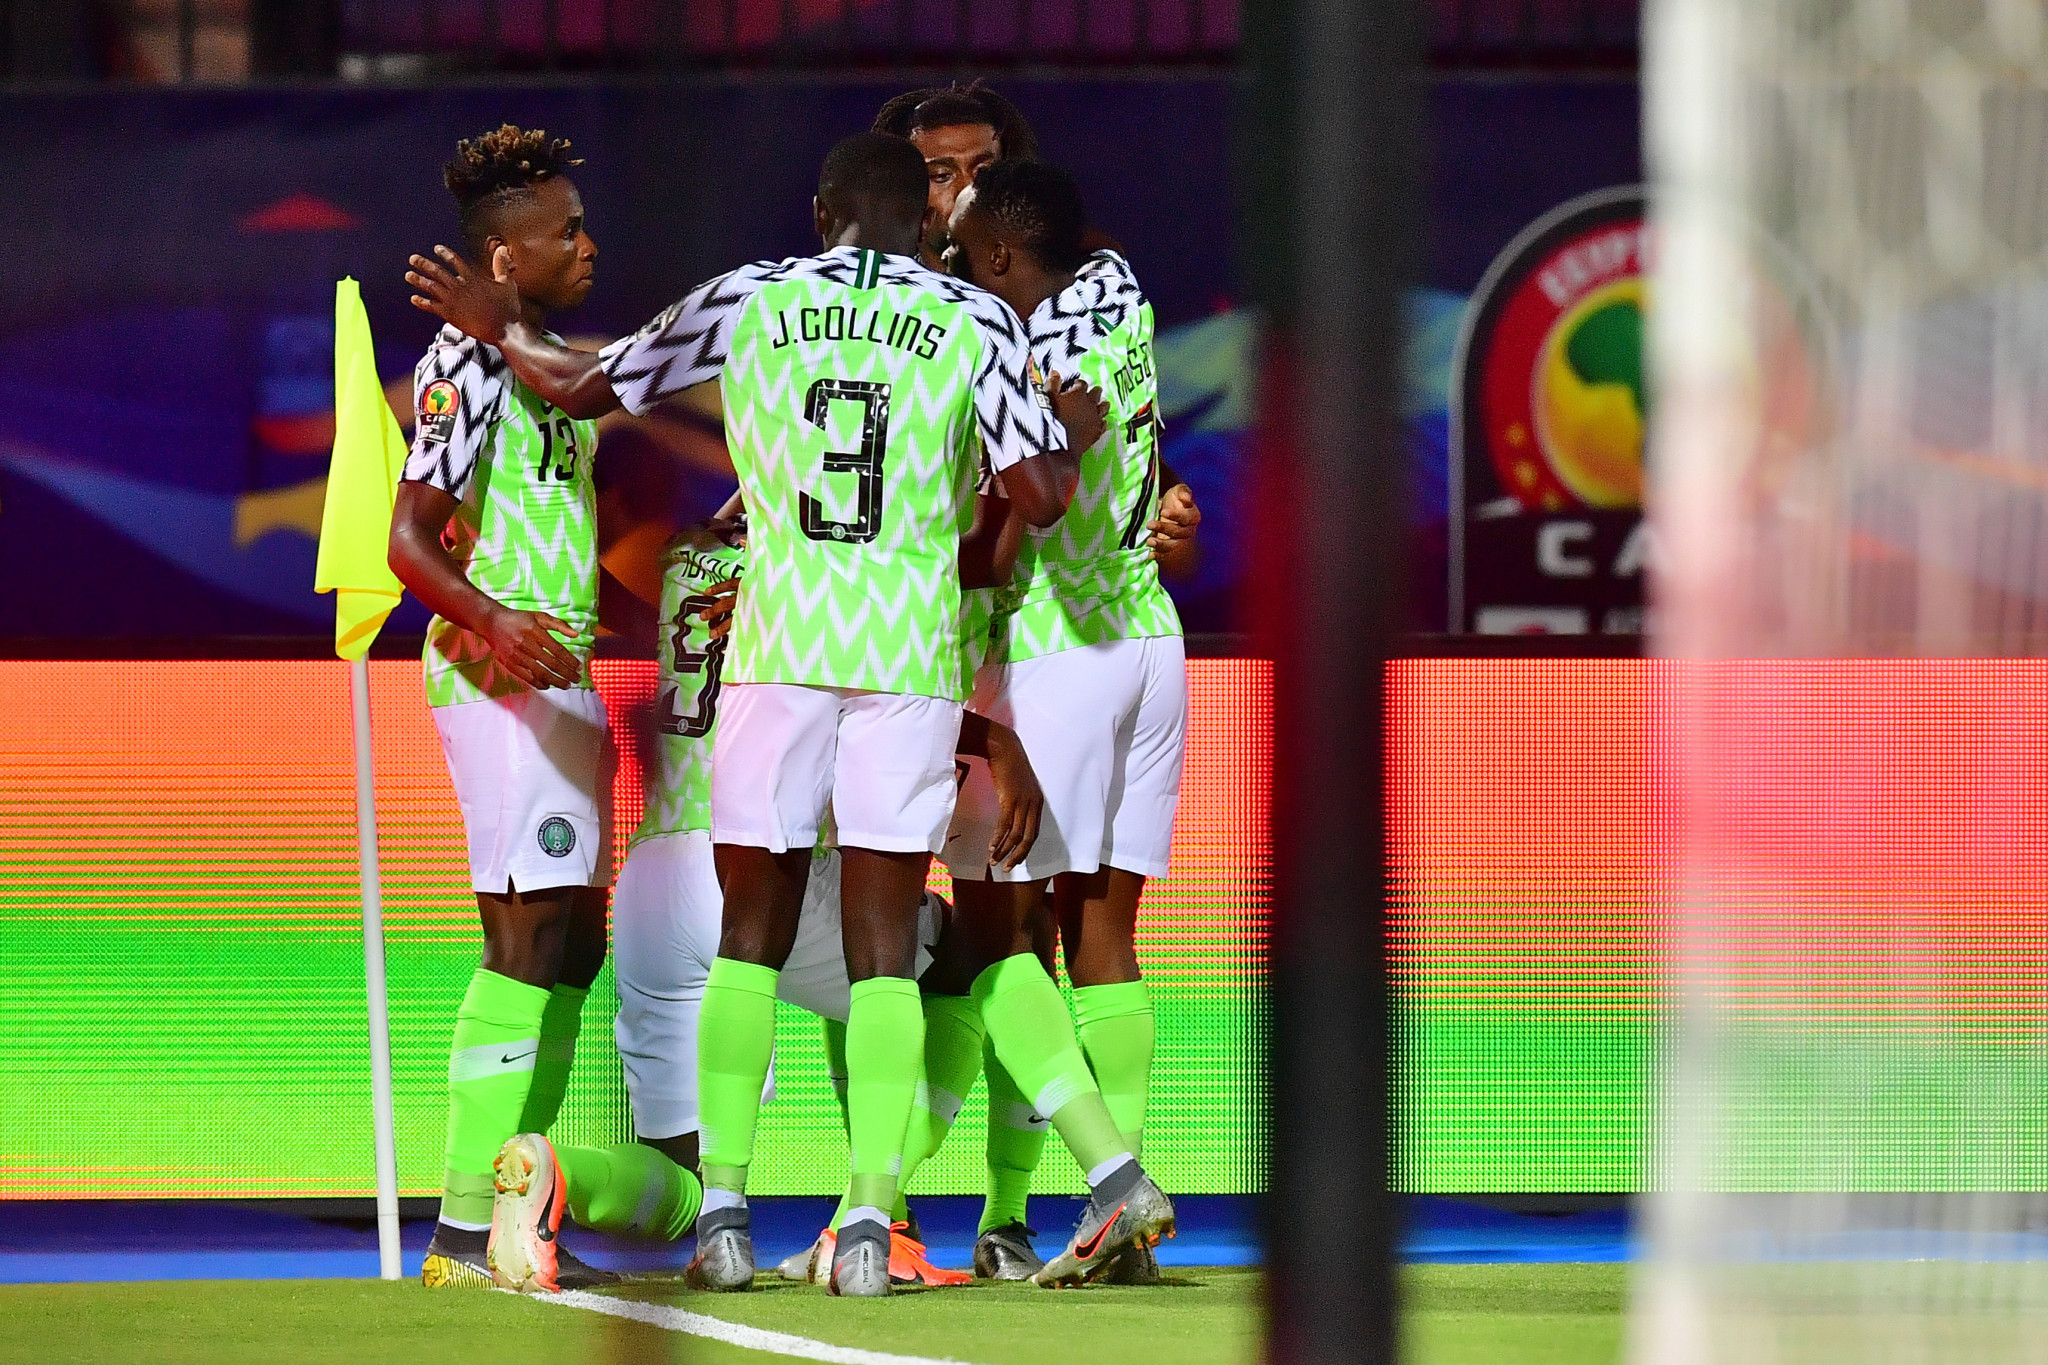 Nigeria's Odion Ighalo celebrates scoring the second-minute goal which gave Nigeria a 1-0 victory over Tunisia in the bronze medal playoff at the Africa Cup of Nations in Cairo ©Getty Images